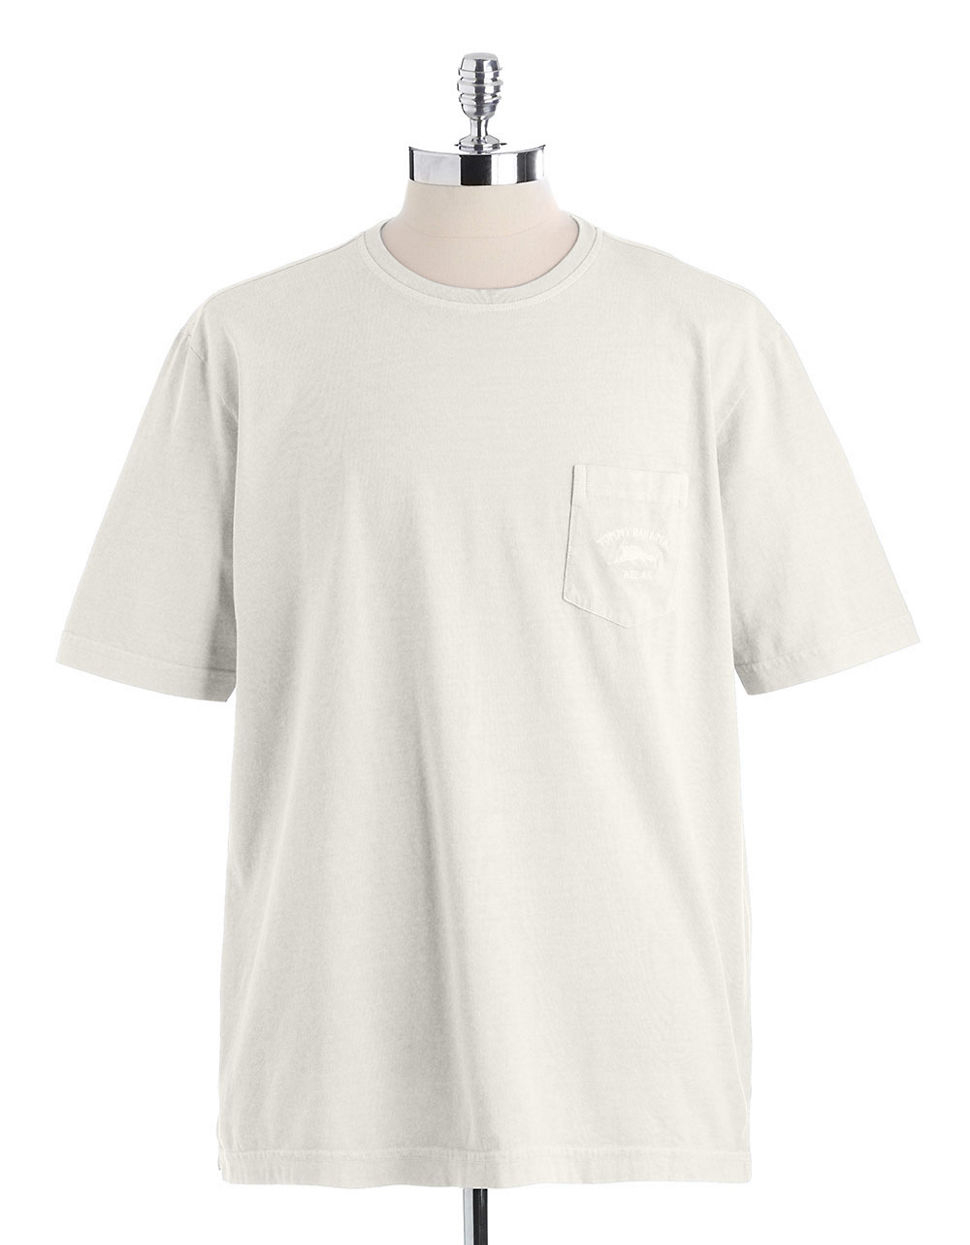 Tommy bahama bahama tide tee in white for men lyst for Tommy bahama christmas shirt 2014